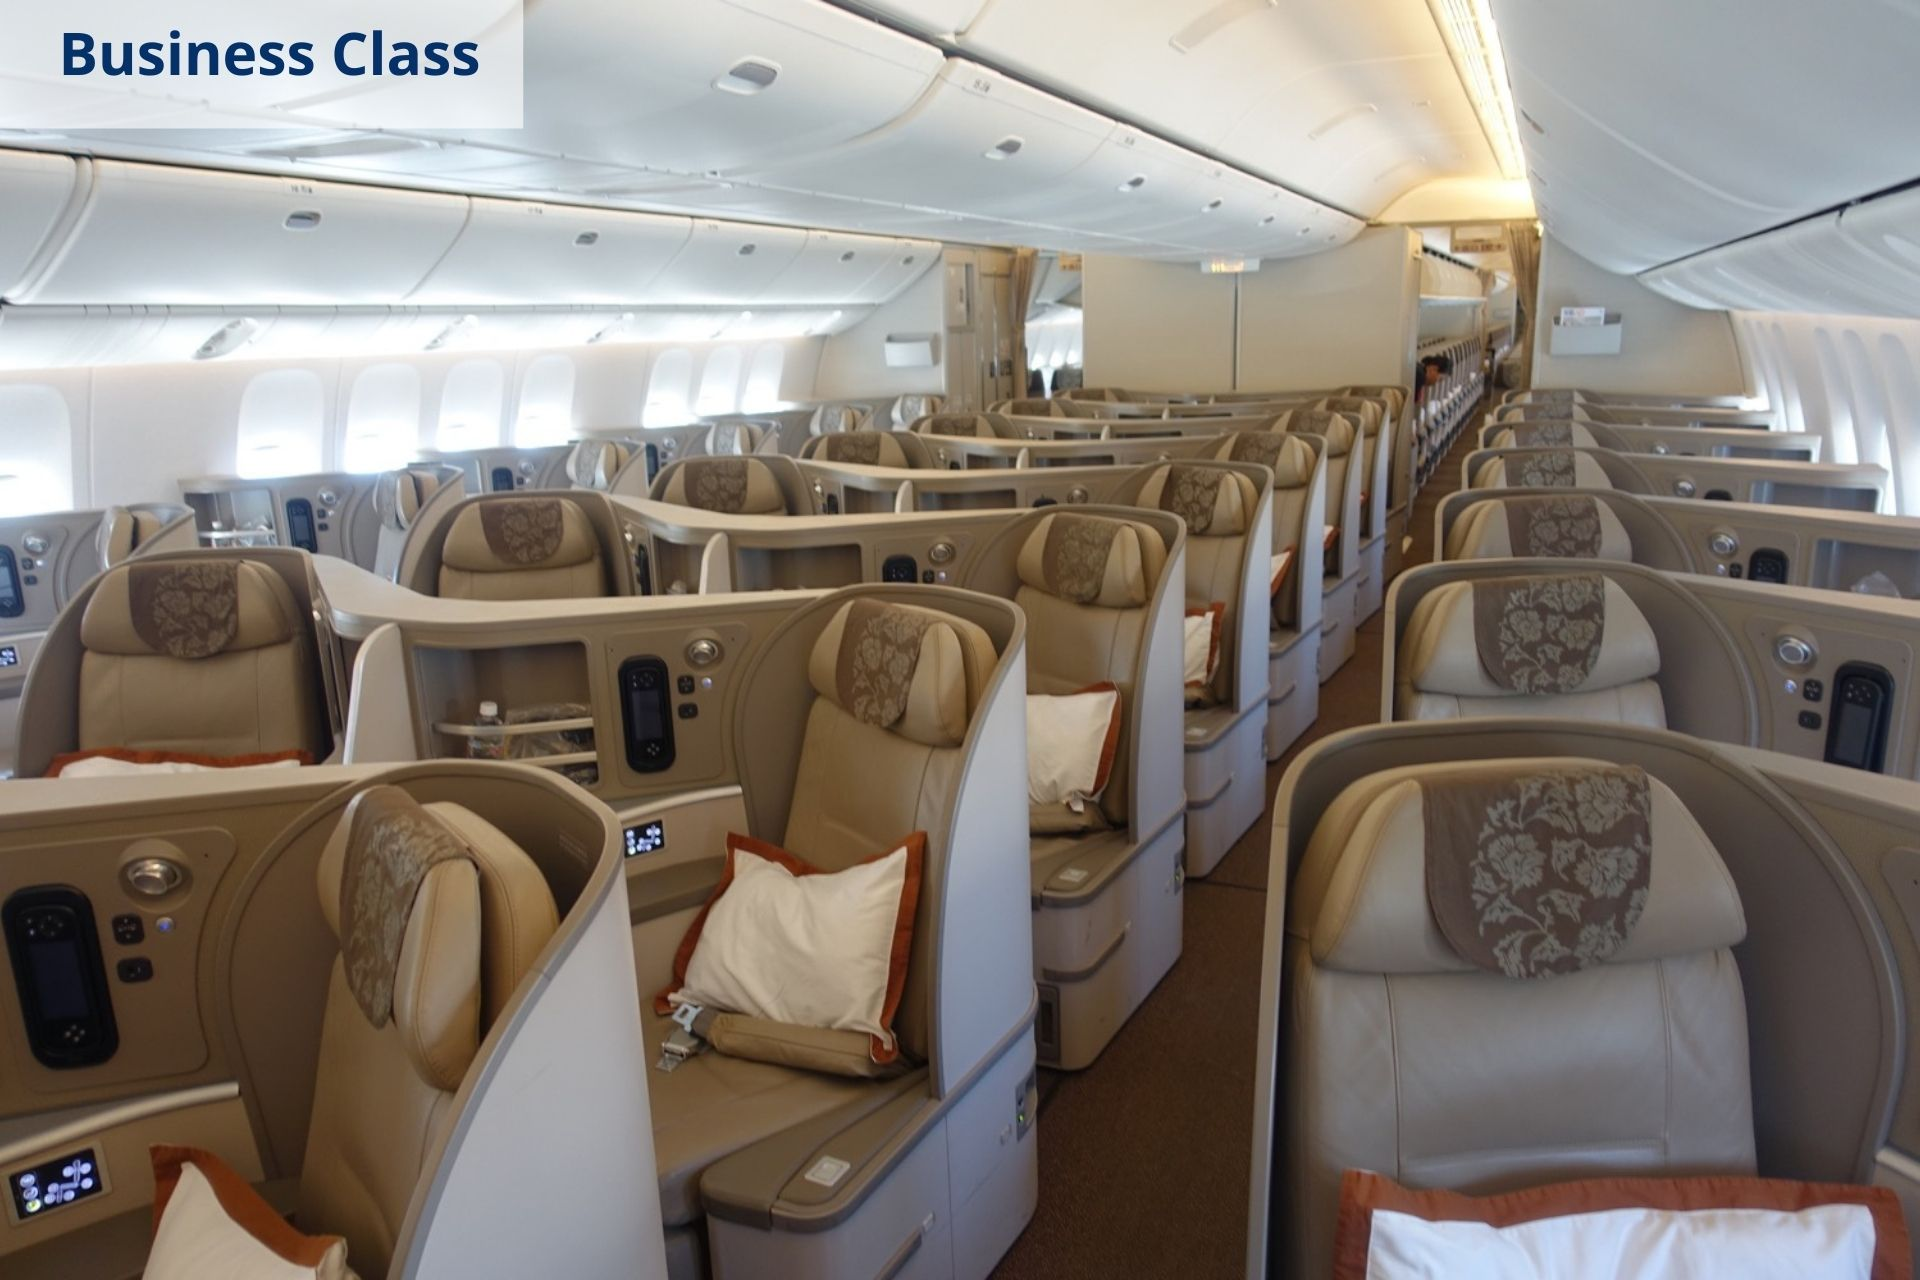 China Eastern business class